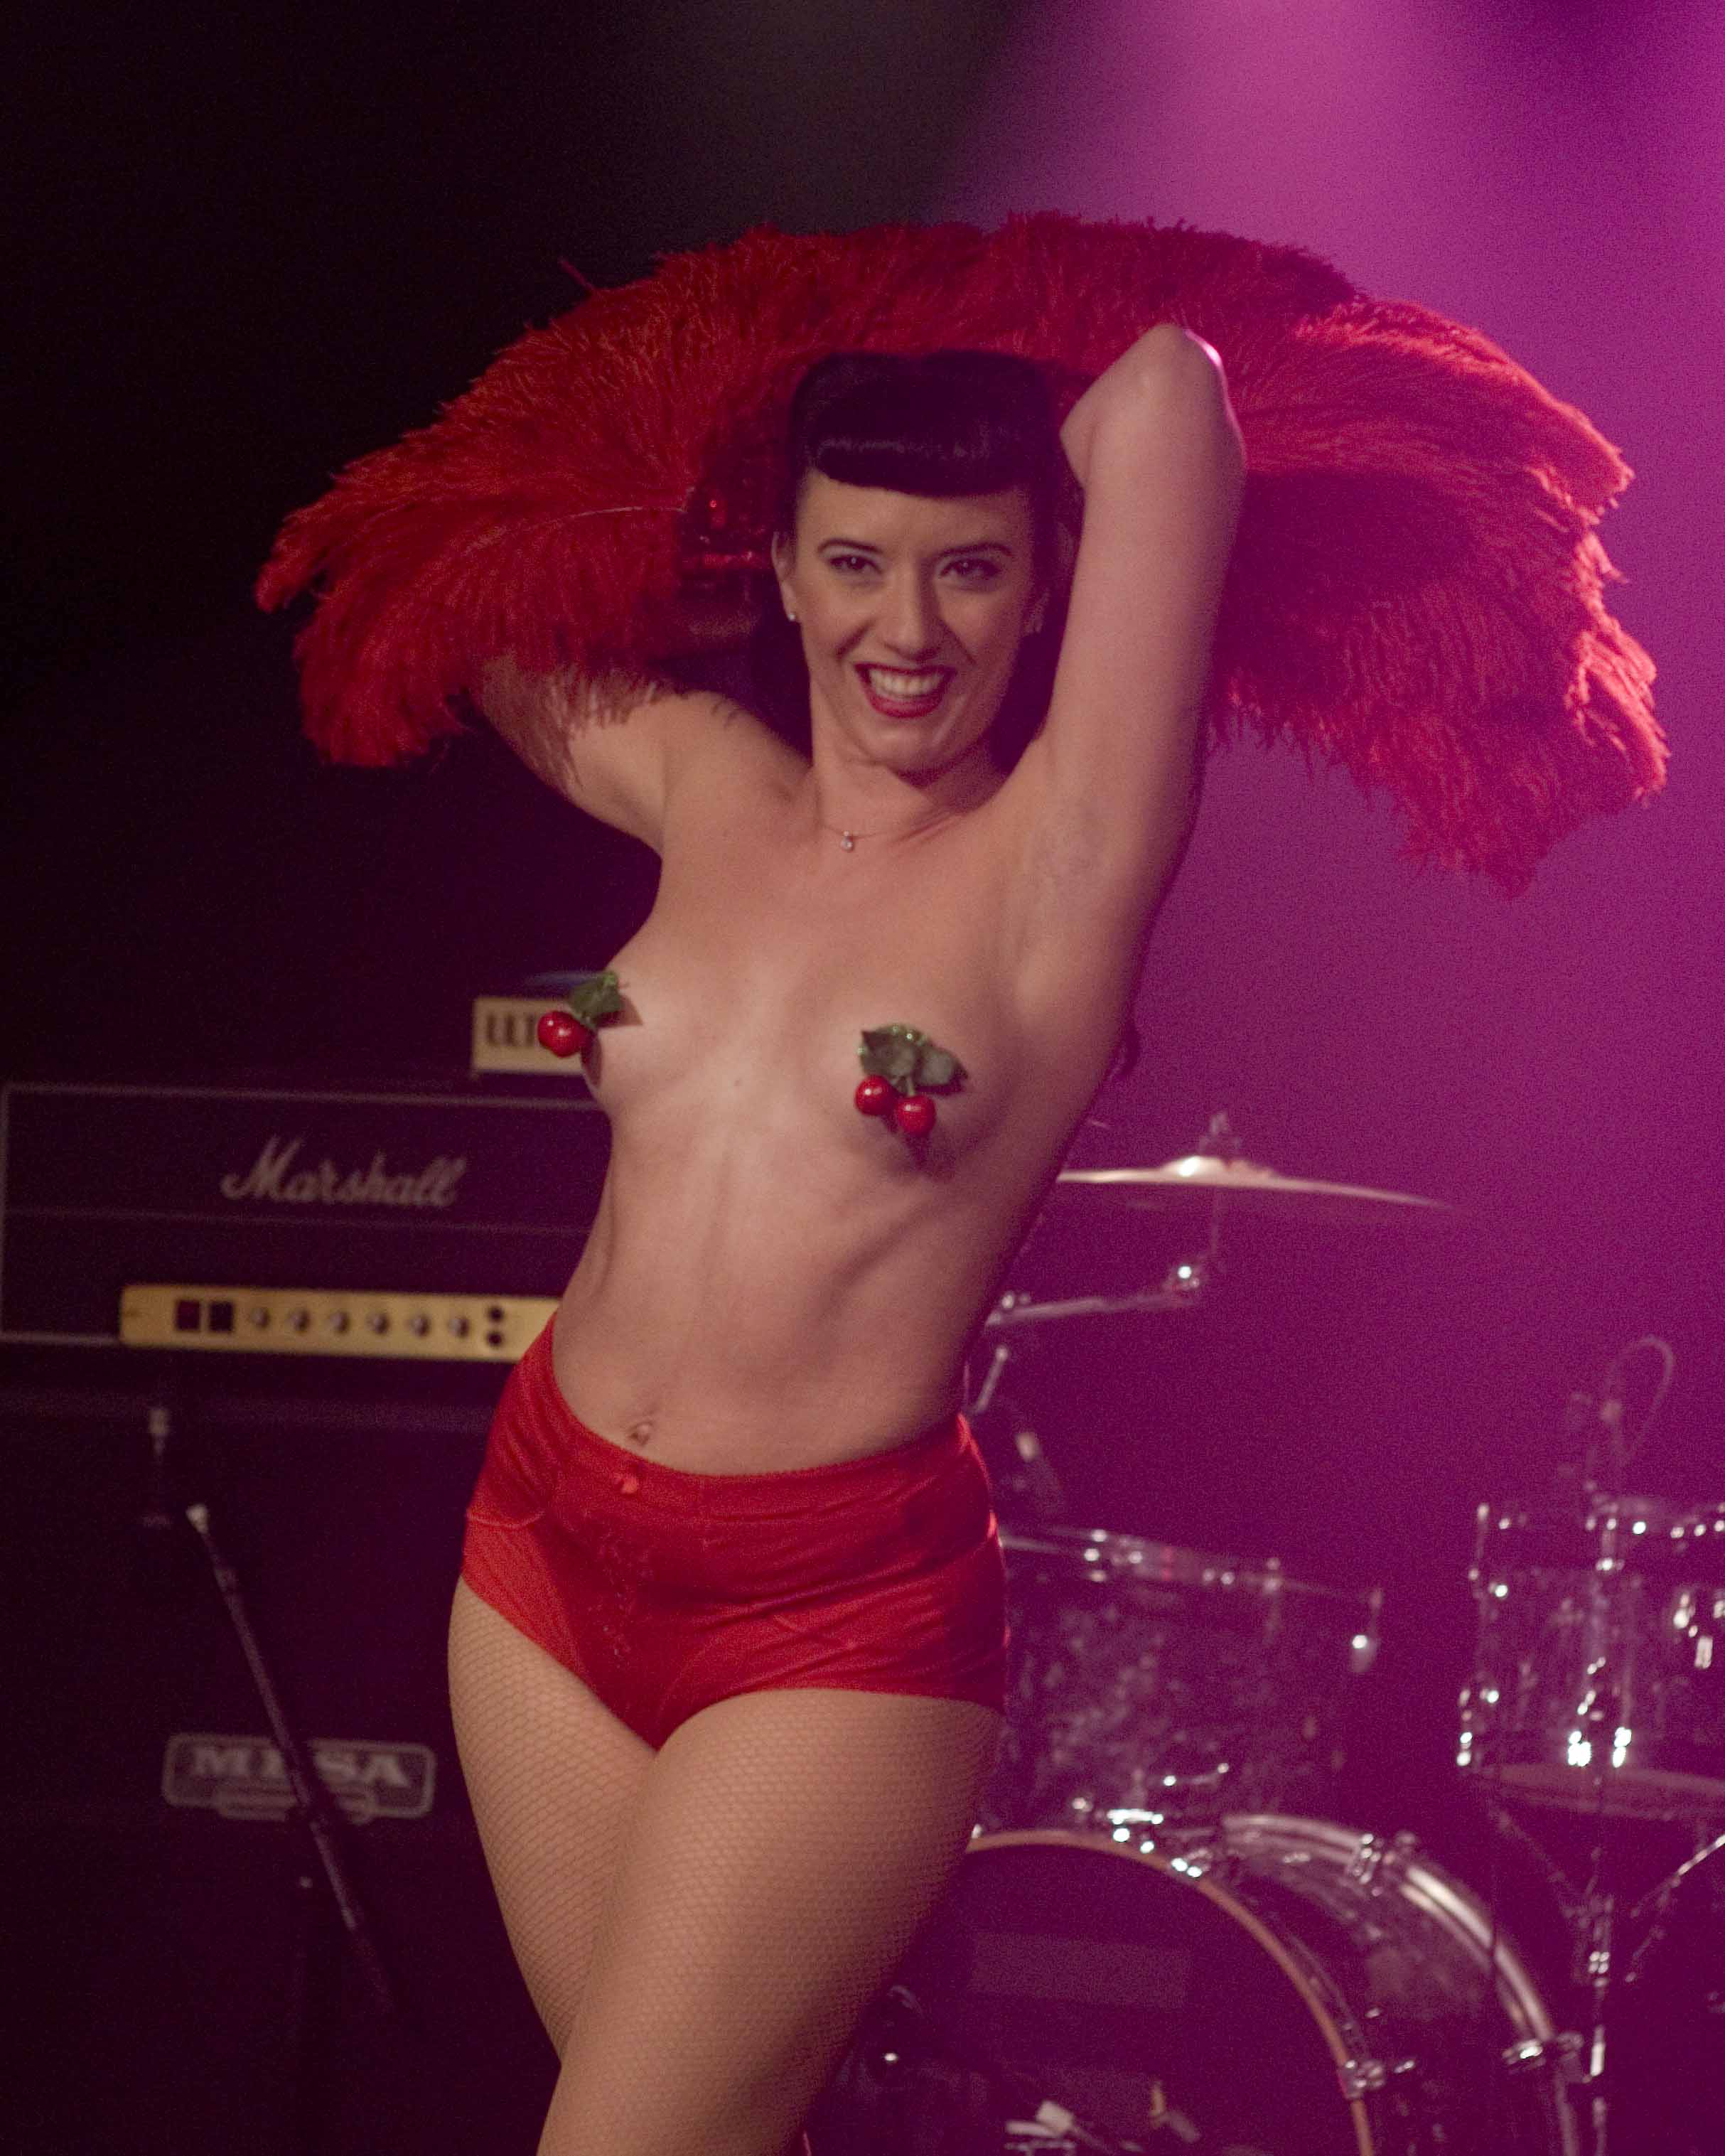 low-rez-jbtv-burlesque0630.jpg